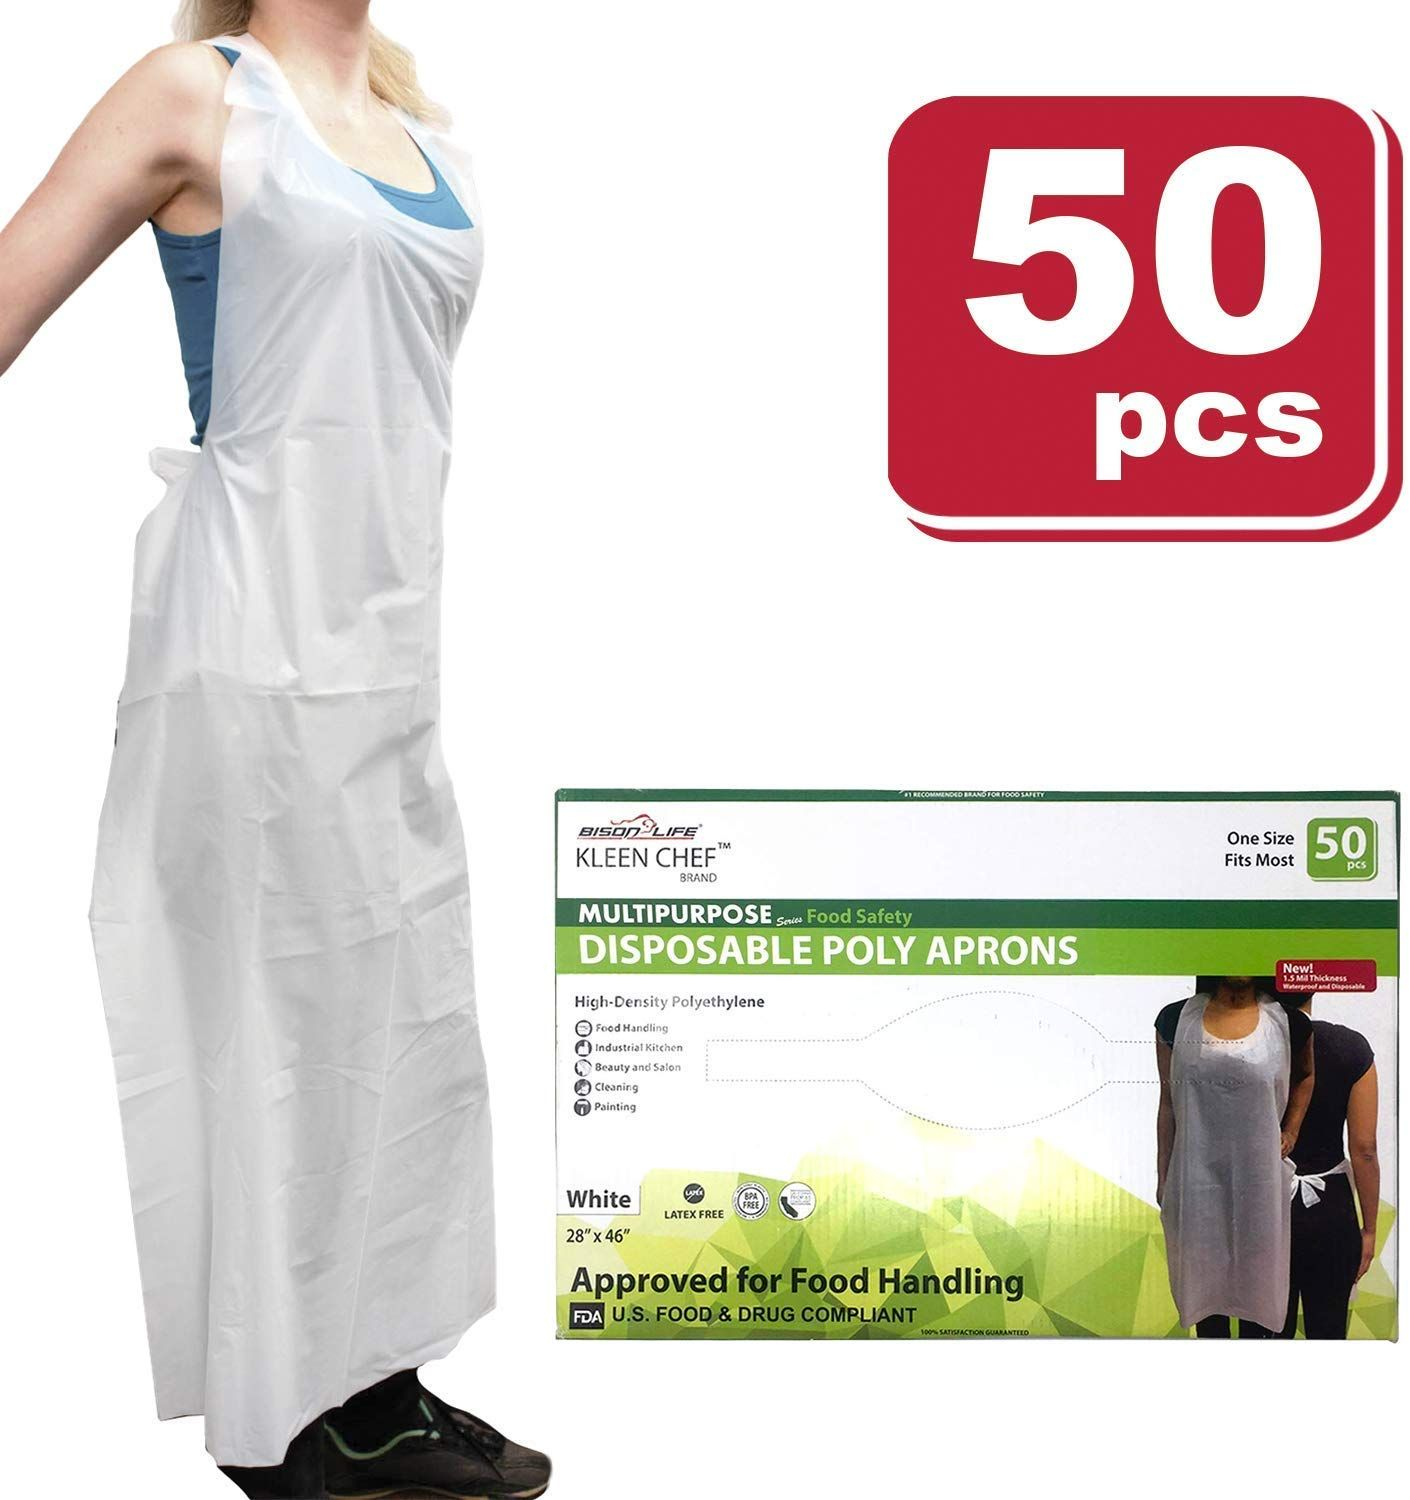 KLEEN CHEF Disposable HighDensity Polyethylene Aprons are